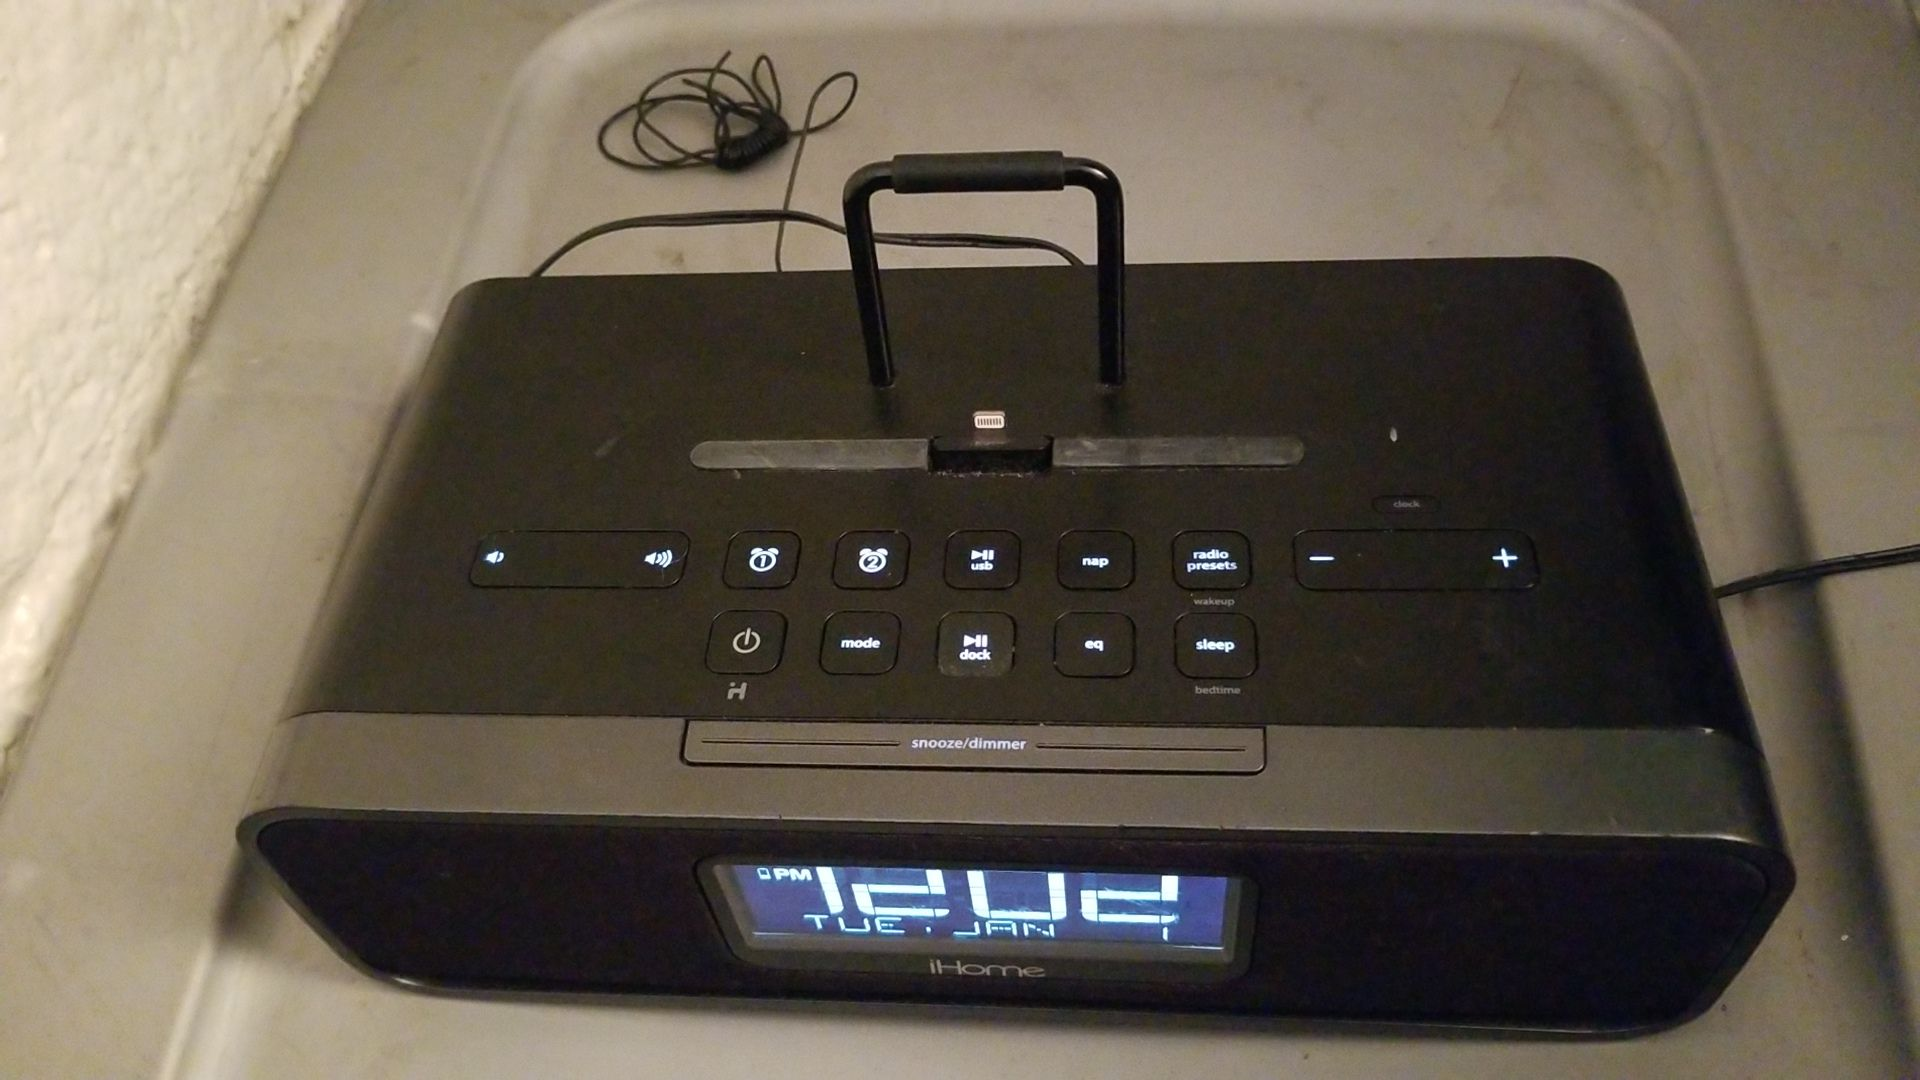 iHome iDL91 Dual Charging Stereo FM Clock Radio with Lightning Dock and USB Charger